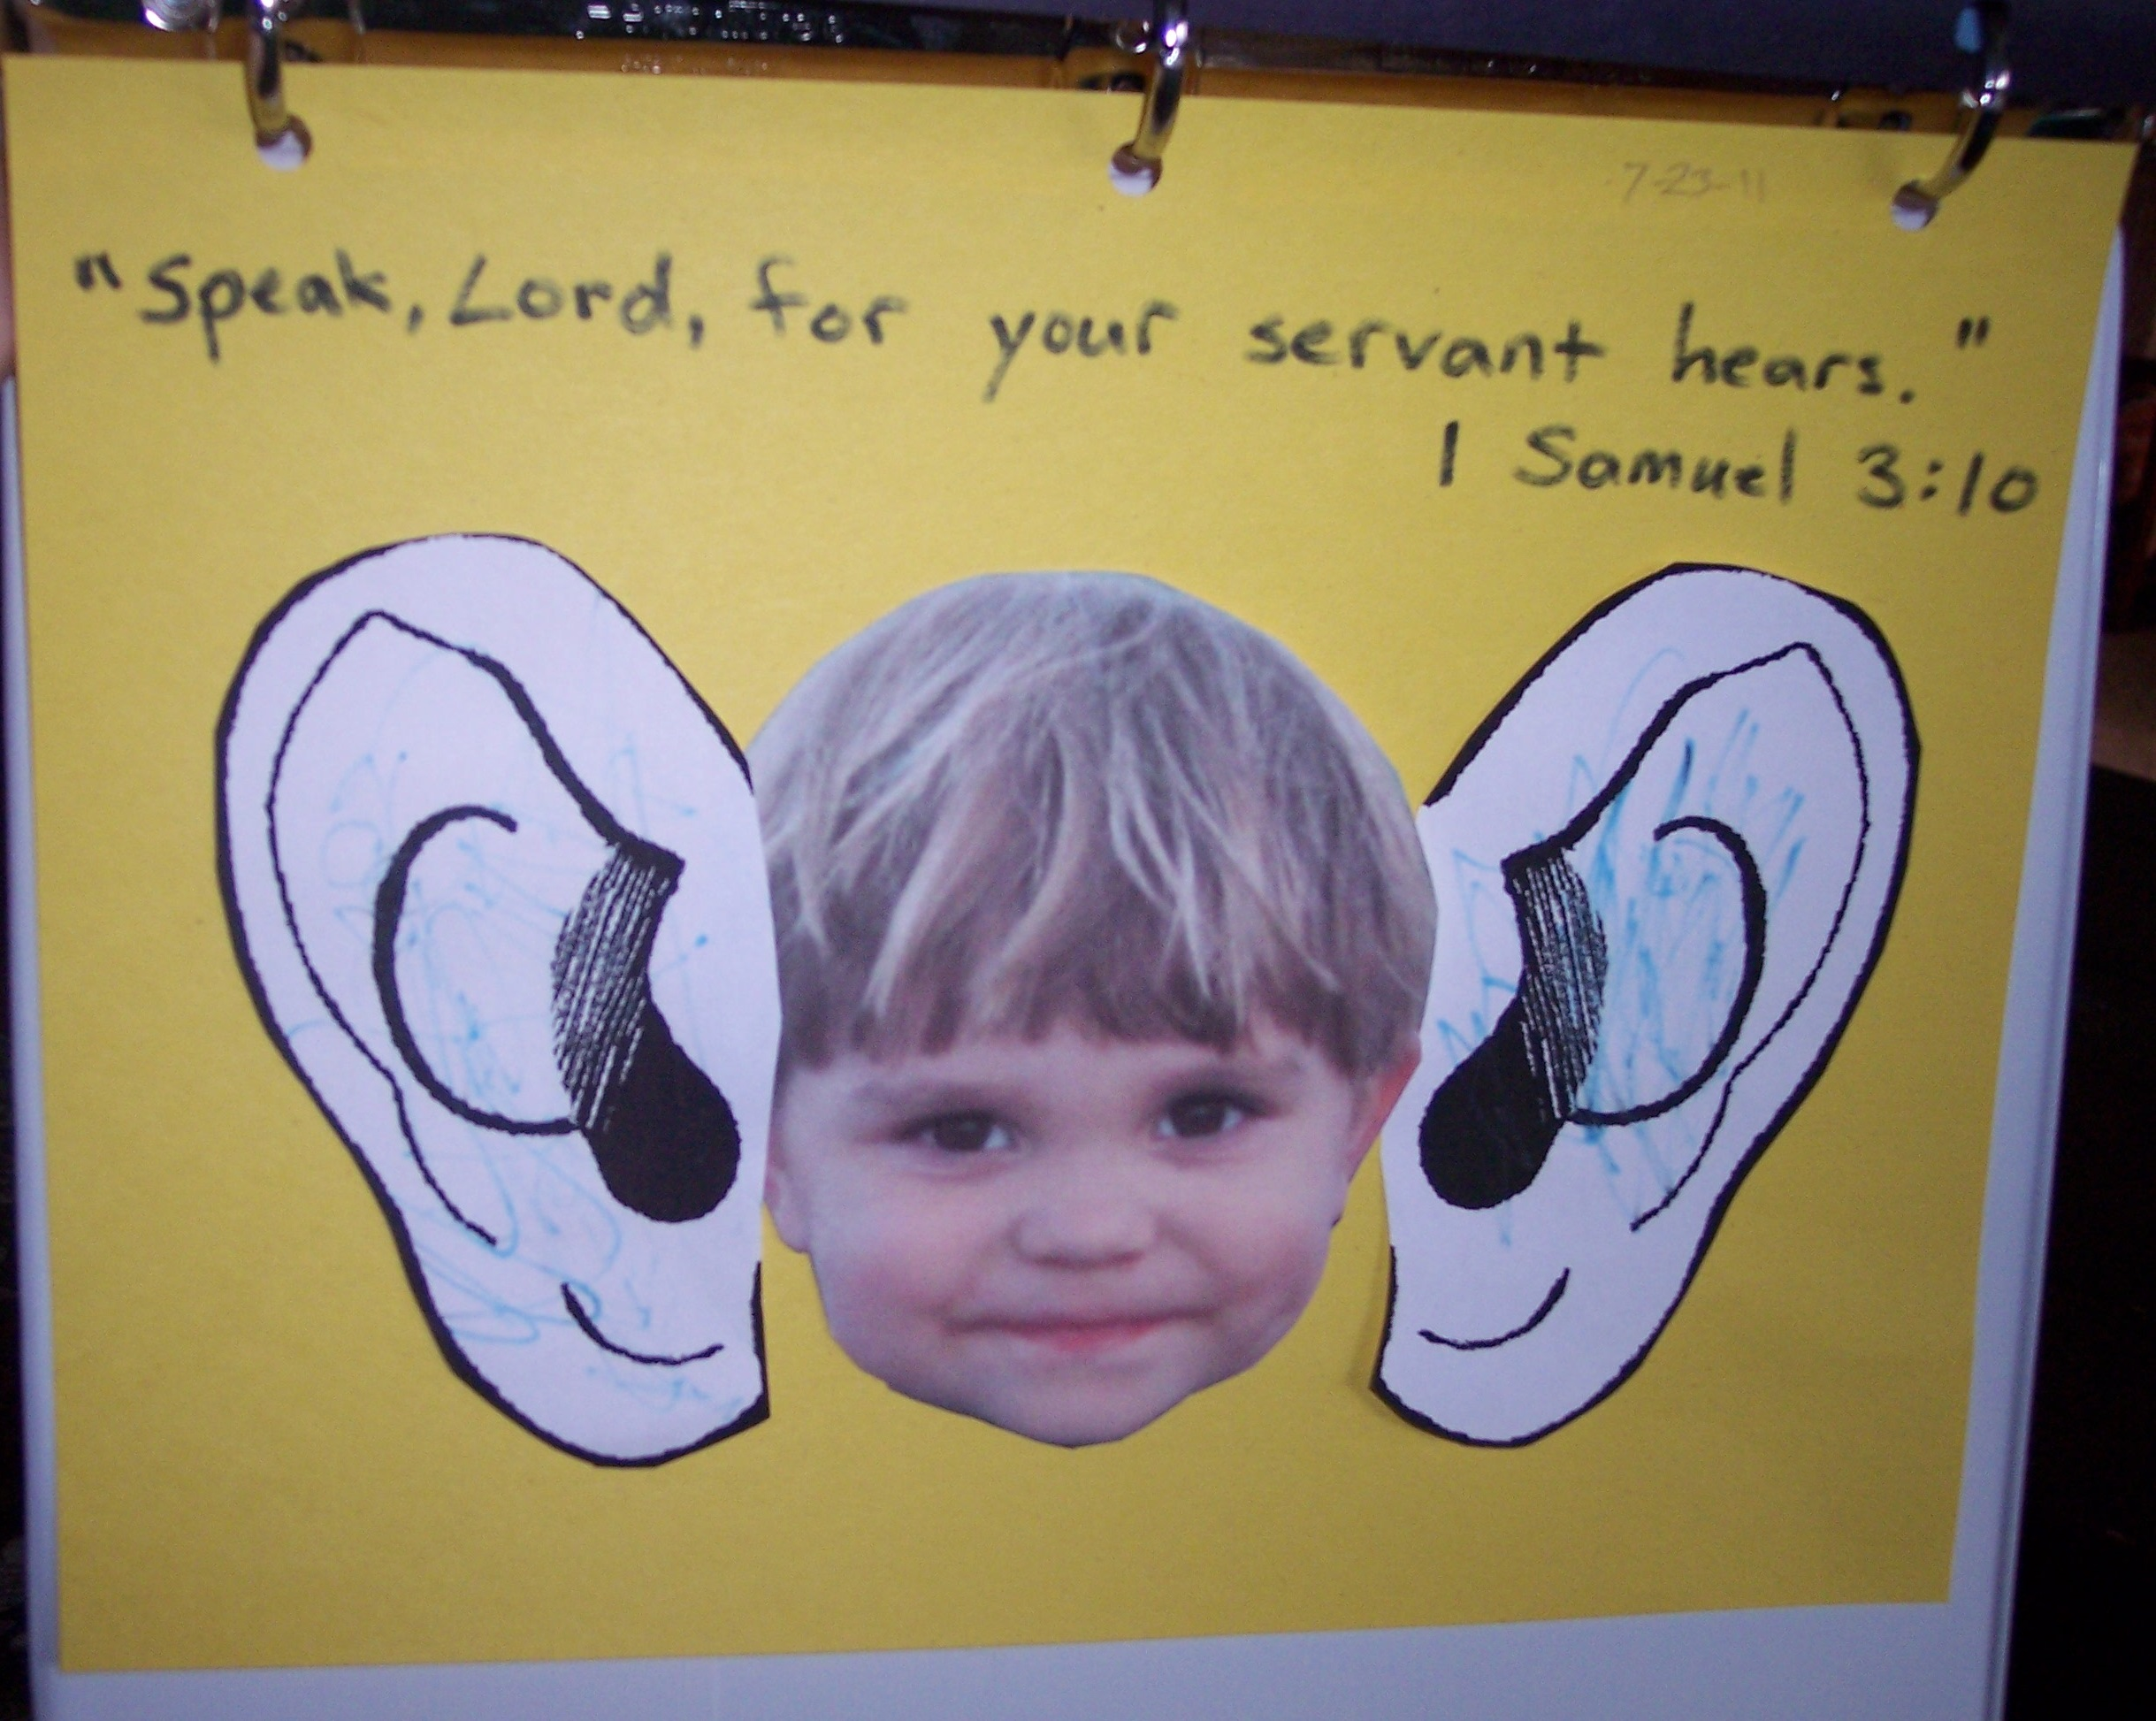 Speak Lord For Your Servant Hears His Treasure Seekers